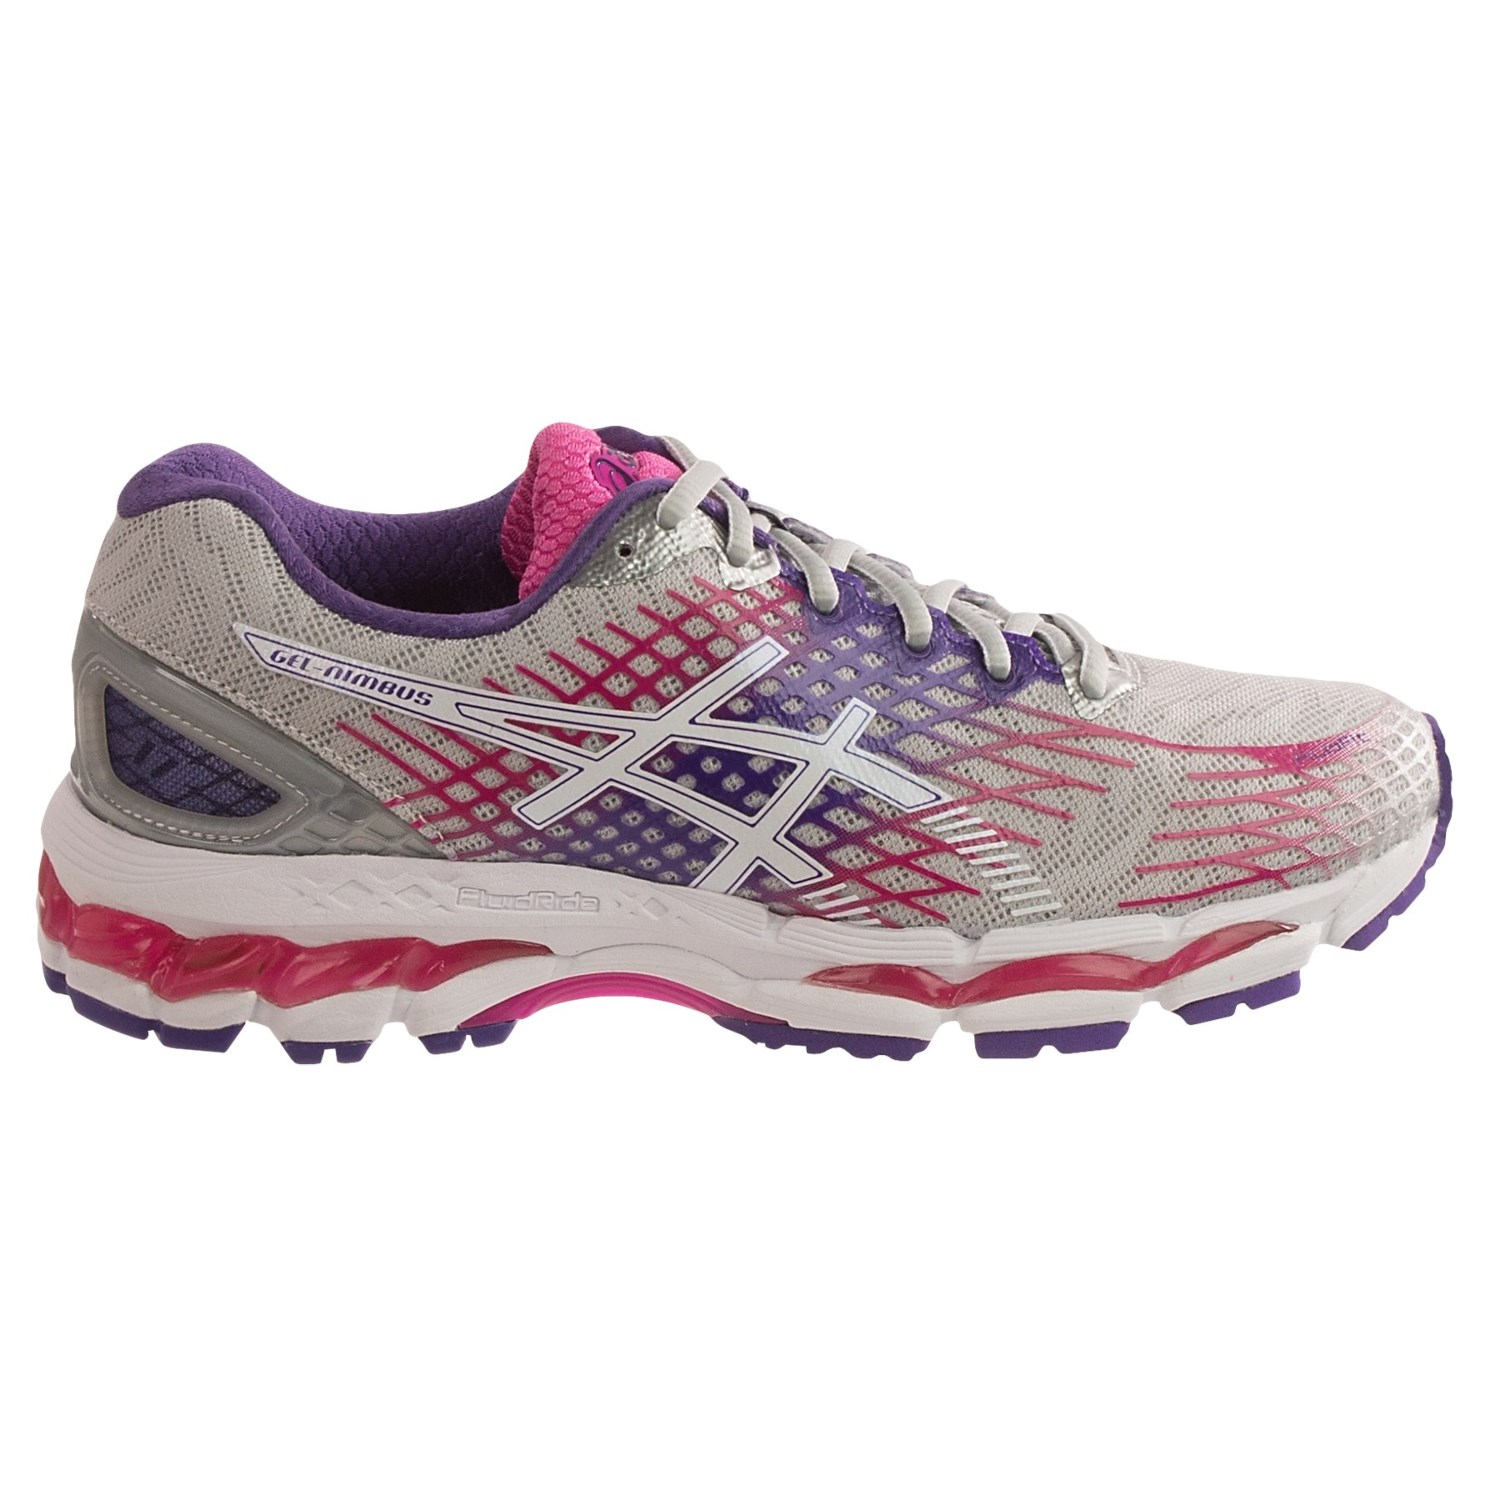 asics gel nimbus 17 running shoes for women save 20. Black Bedroom Furniture Sets. Home Design Ideas